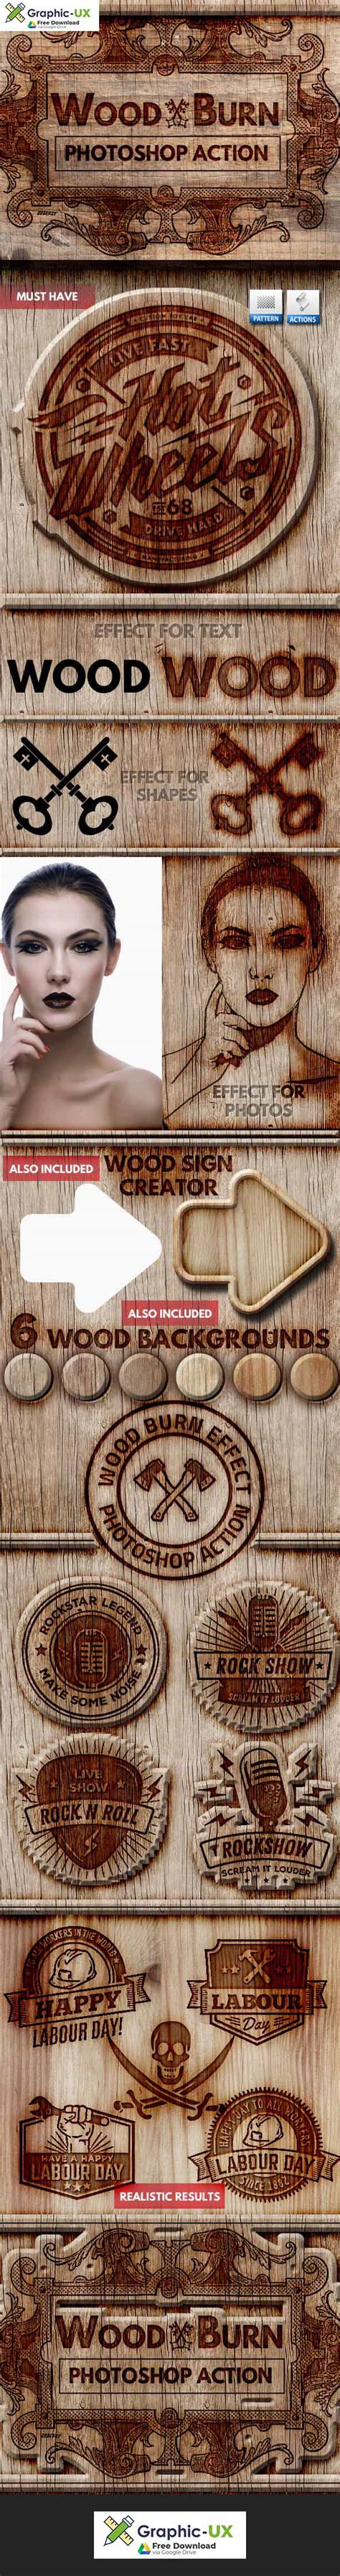 wood burn effect photoshop action  graphicux